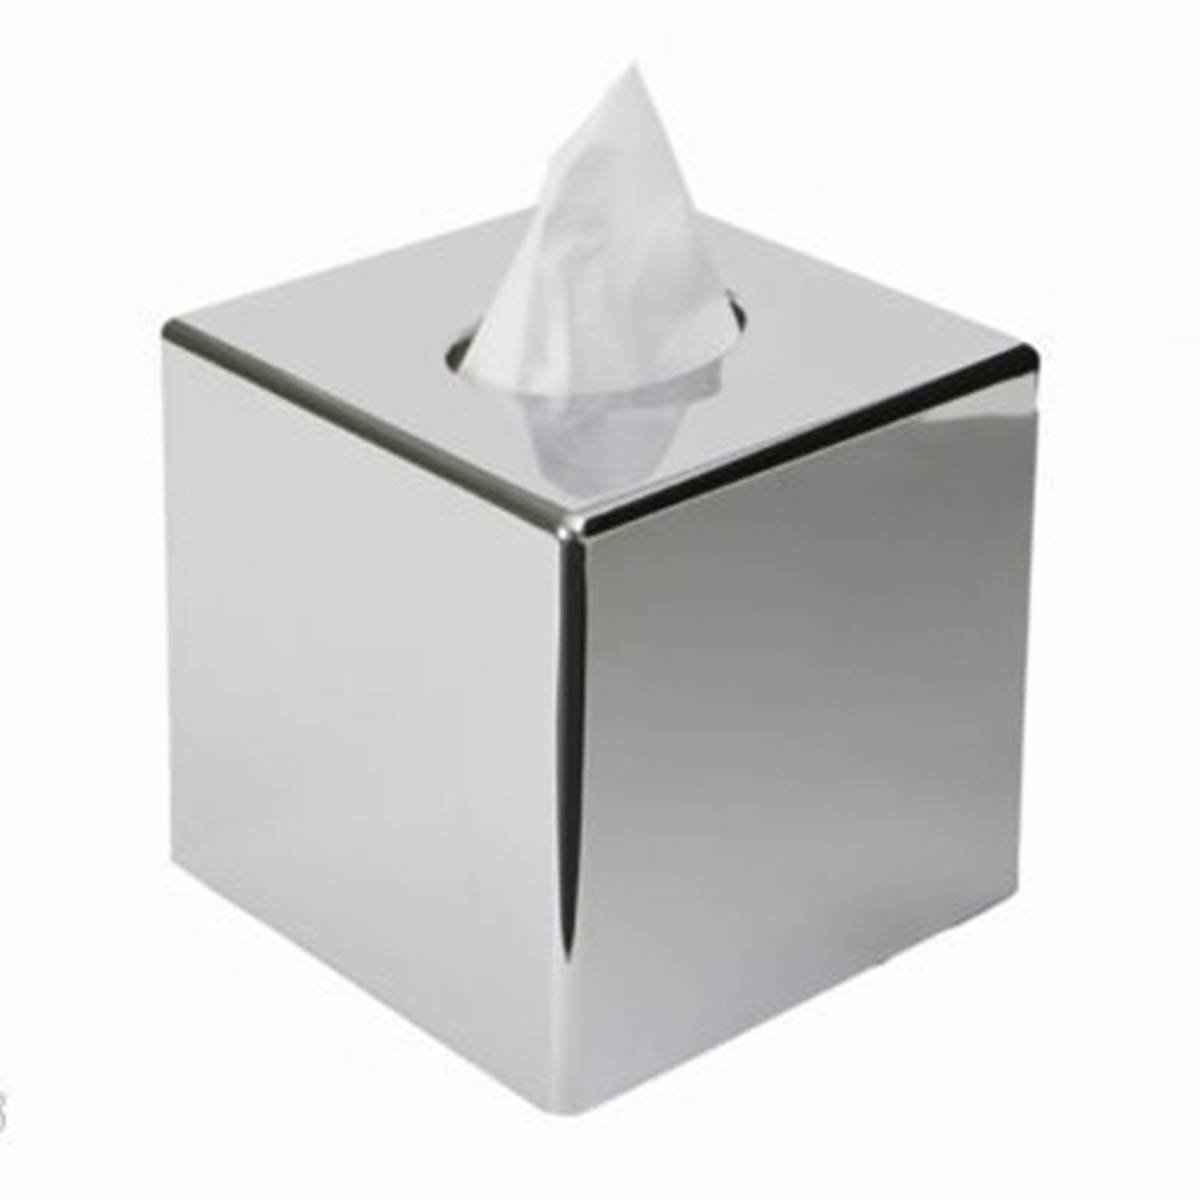 CONBEE Stainless Steel Cube Tissue Holder Box Corrosion Resistance Home Office Decor Silver Size 130 130 130mm B01HHMTZ6S